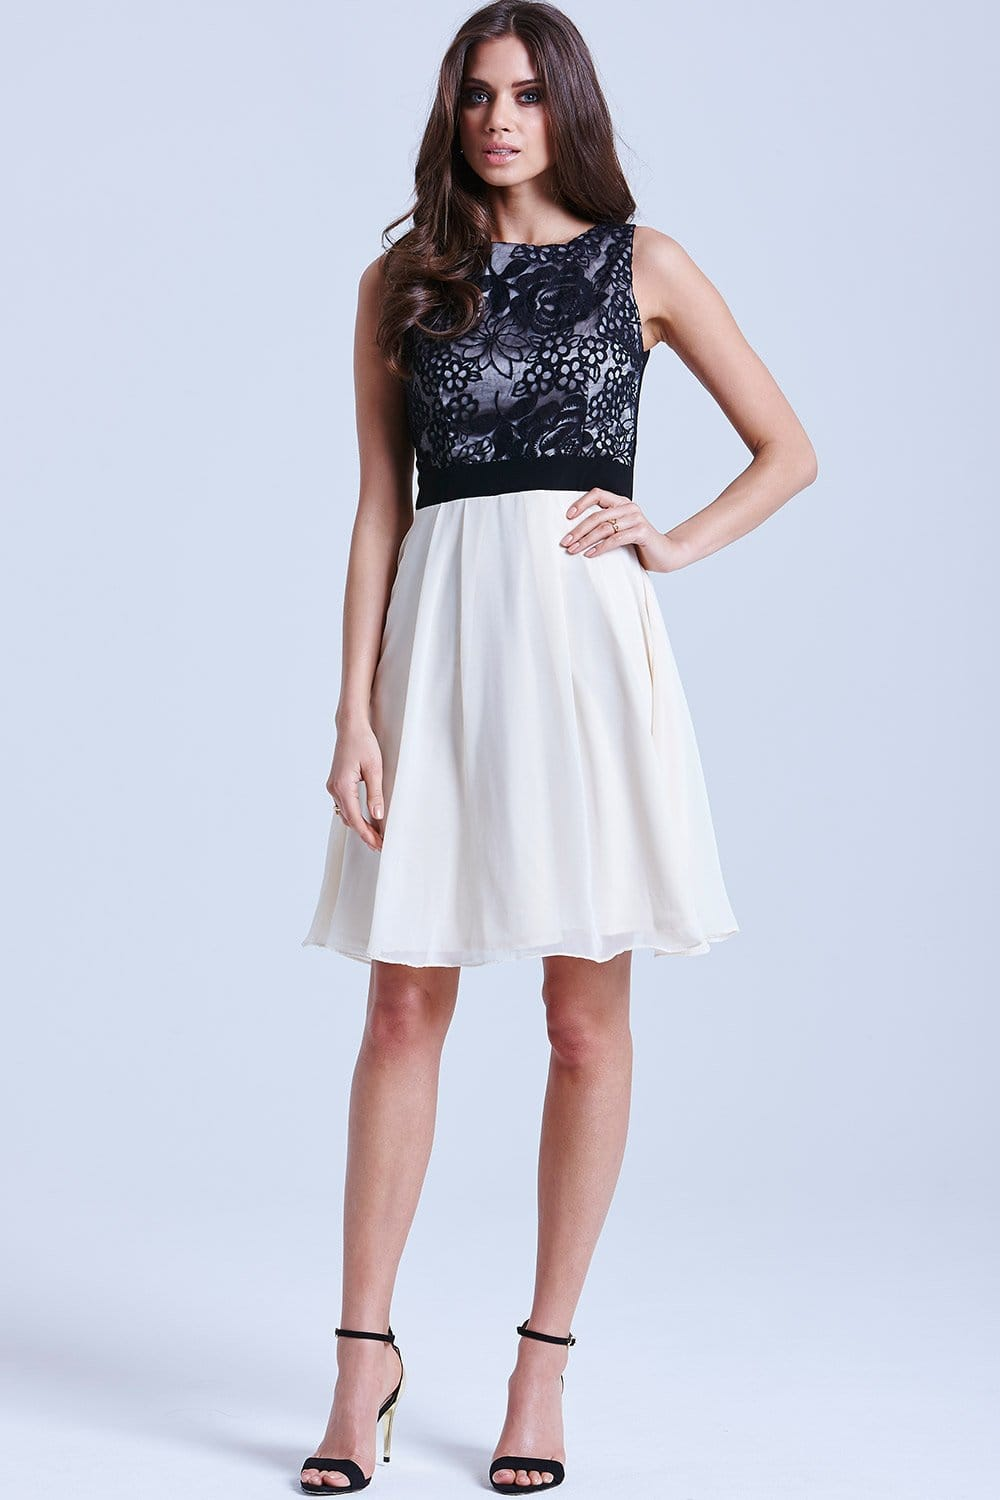 Cream And Black Fit And Flare Floral Dress